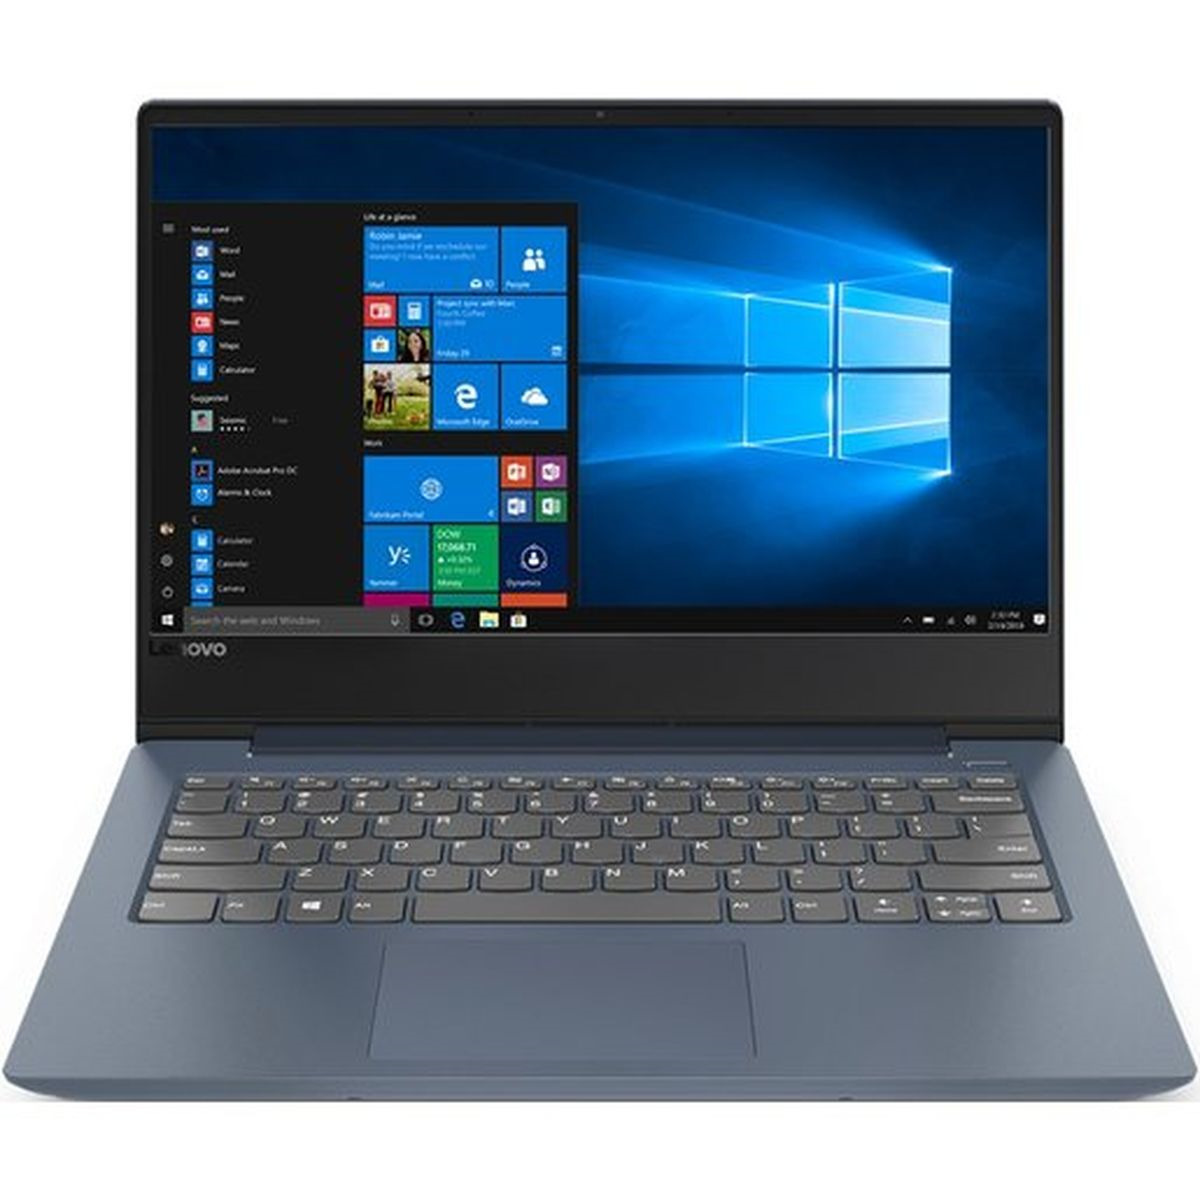 14 Ноутбук Lenovo IdeaPad 330S 81F401BSRU, синий ноутбук lenovo ideapad 330s 14ikb 81f401dbru intel® core™ i5 8250u kaby lake r 6 мб smartcache 1 60 ггц 4 гб 256 ssd 14 1920 х 1080 full hd ips intel uhd graphics 620 sma выделяется